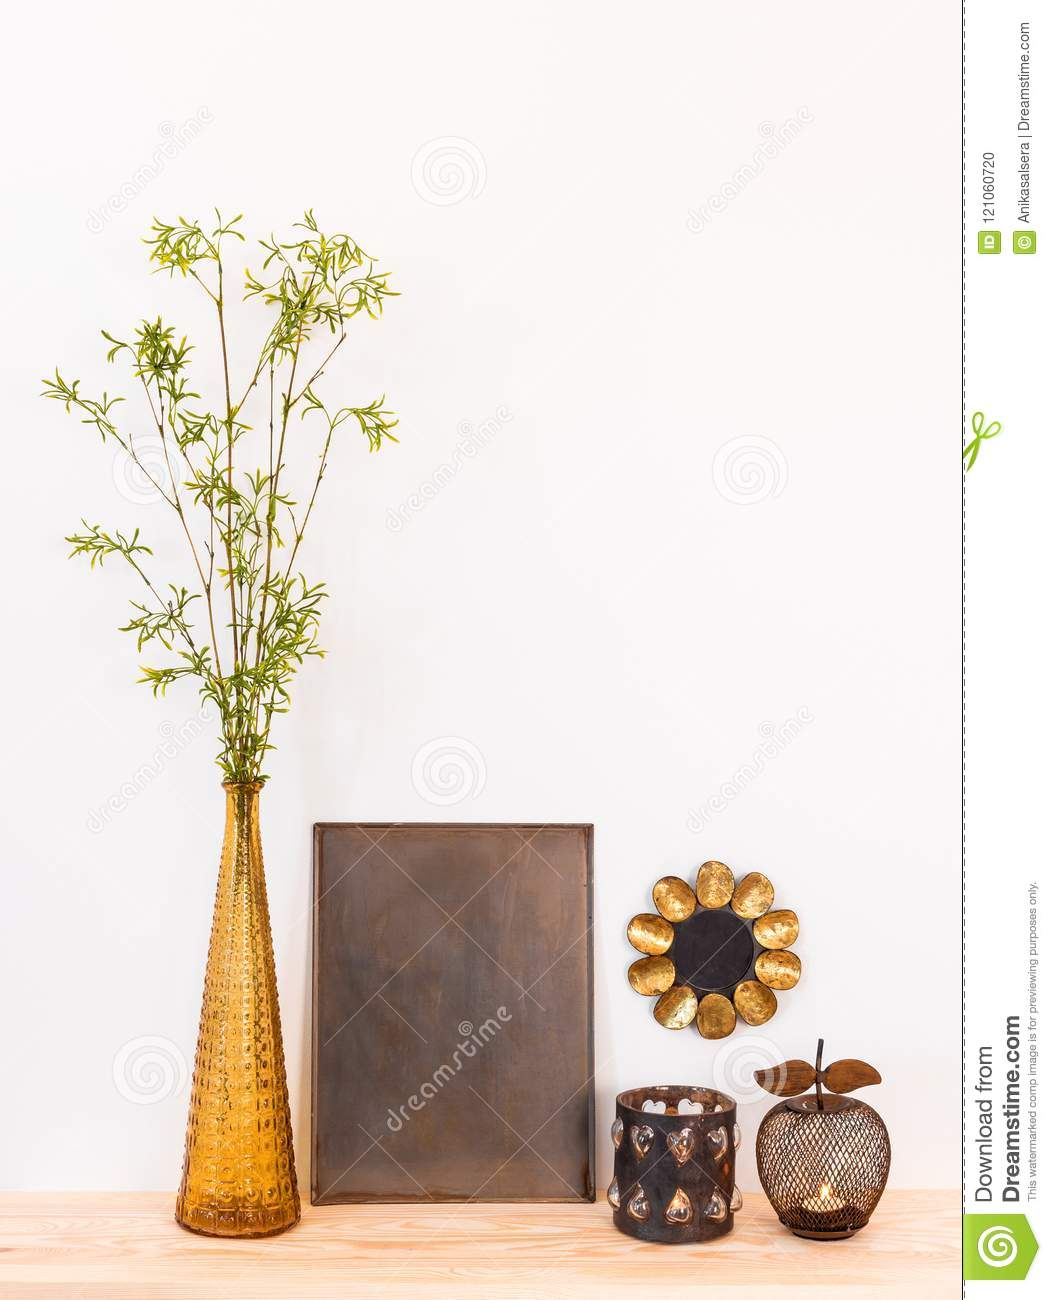 Home Decor Composition With Tree Branches And Metal Objects Stock